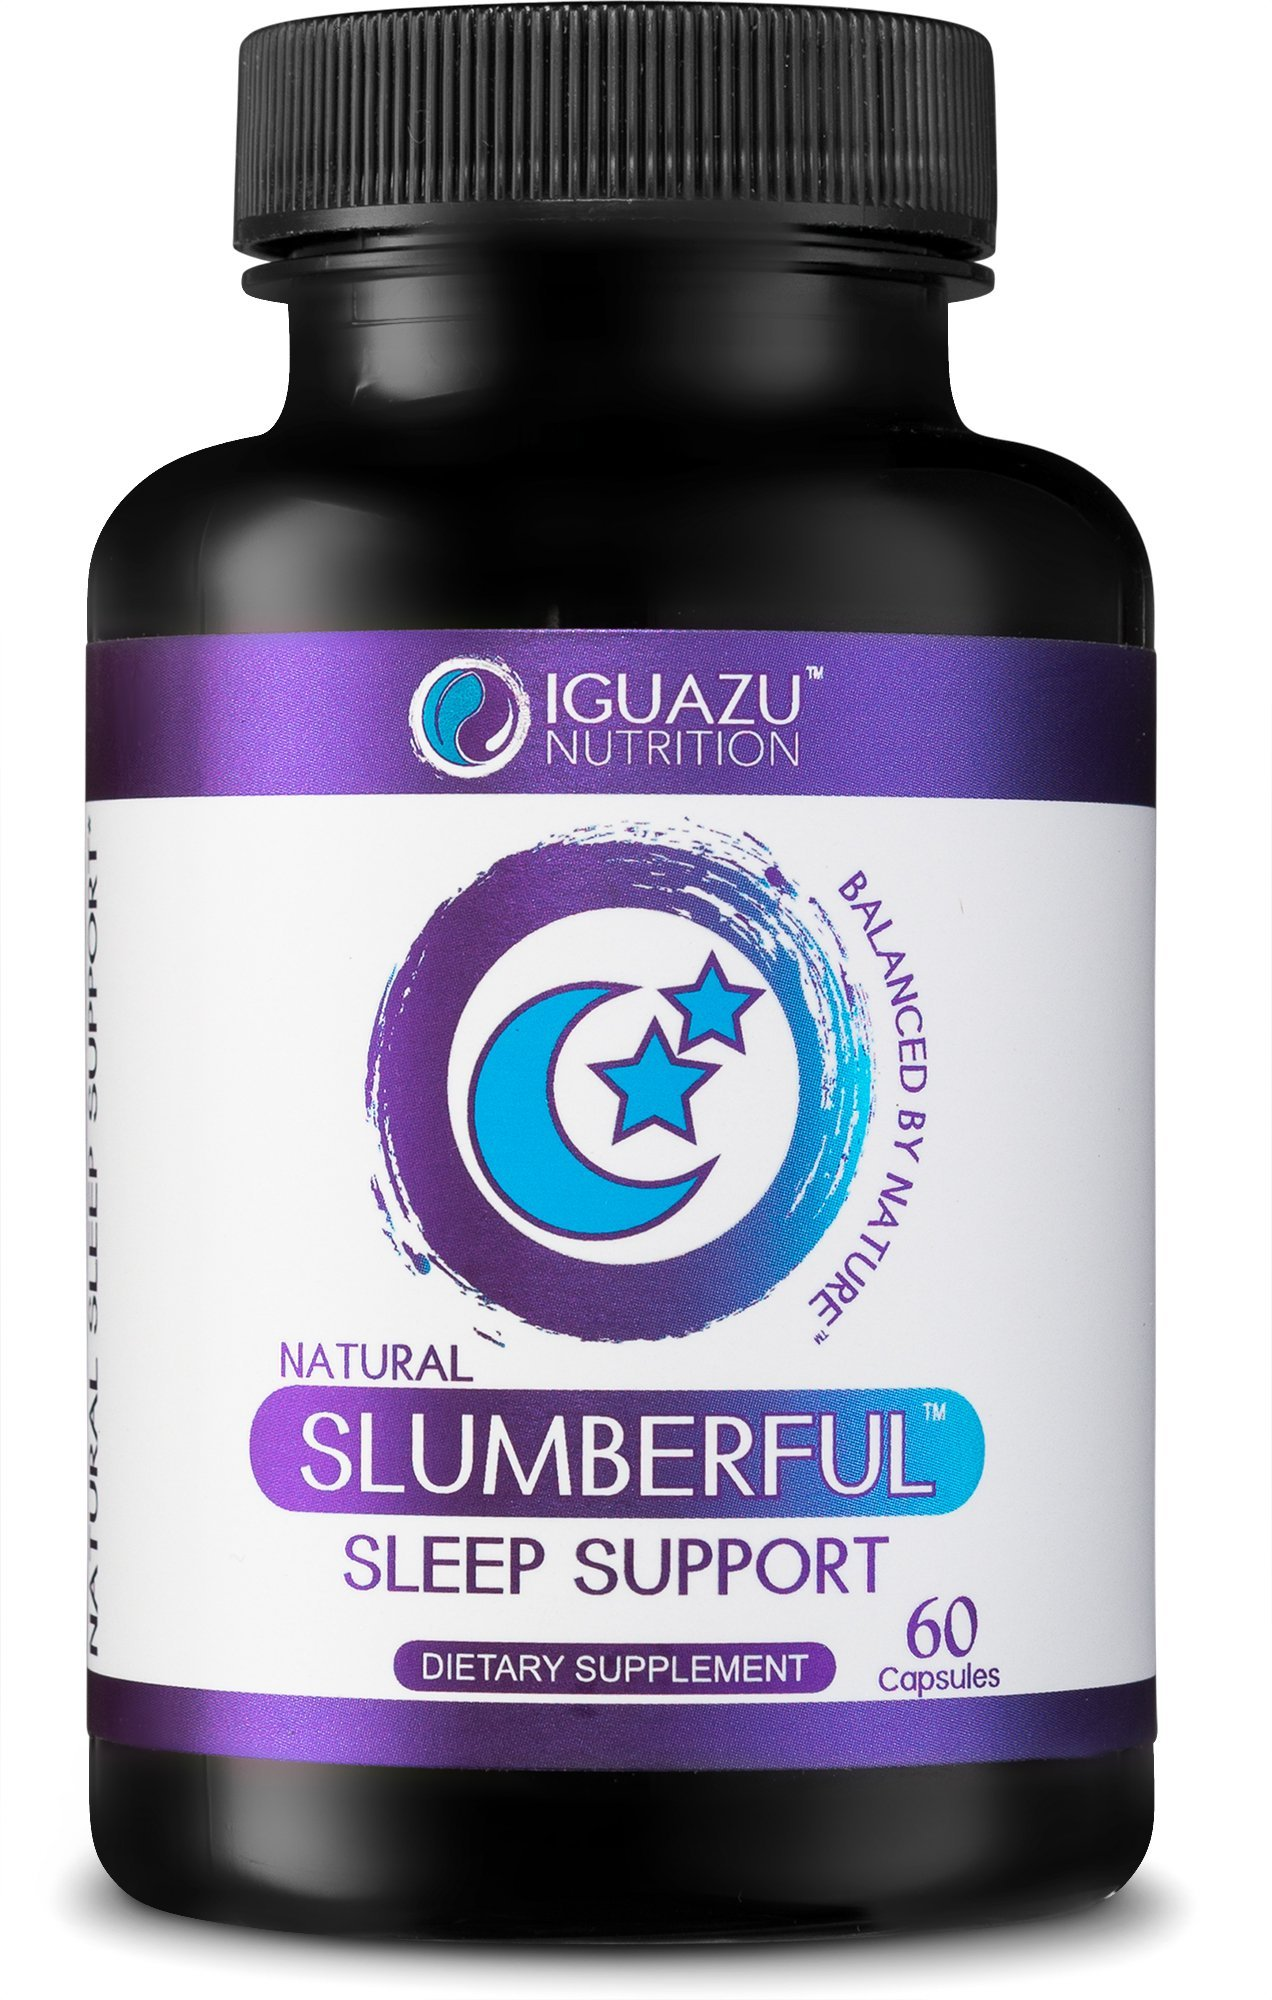 Slumberful Natural Sleep Aid - Premium Sleeping Pills with Valerian Root & Melatonin, Magnesium & Other Natural Non Habit Forming Ingredients, Also Helps with Anxiety, Stress, Mood & Focus 3 Pack